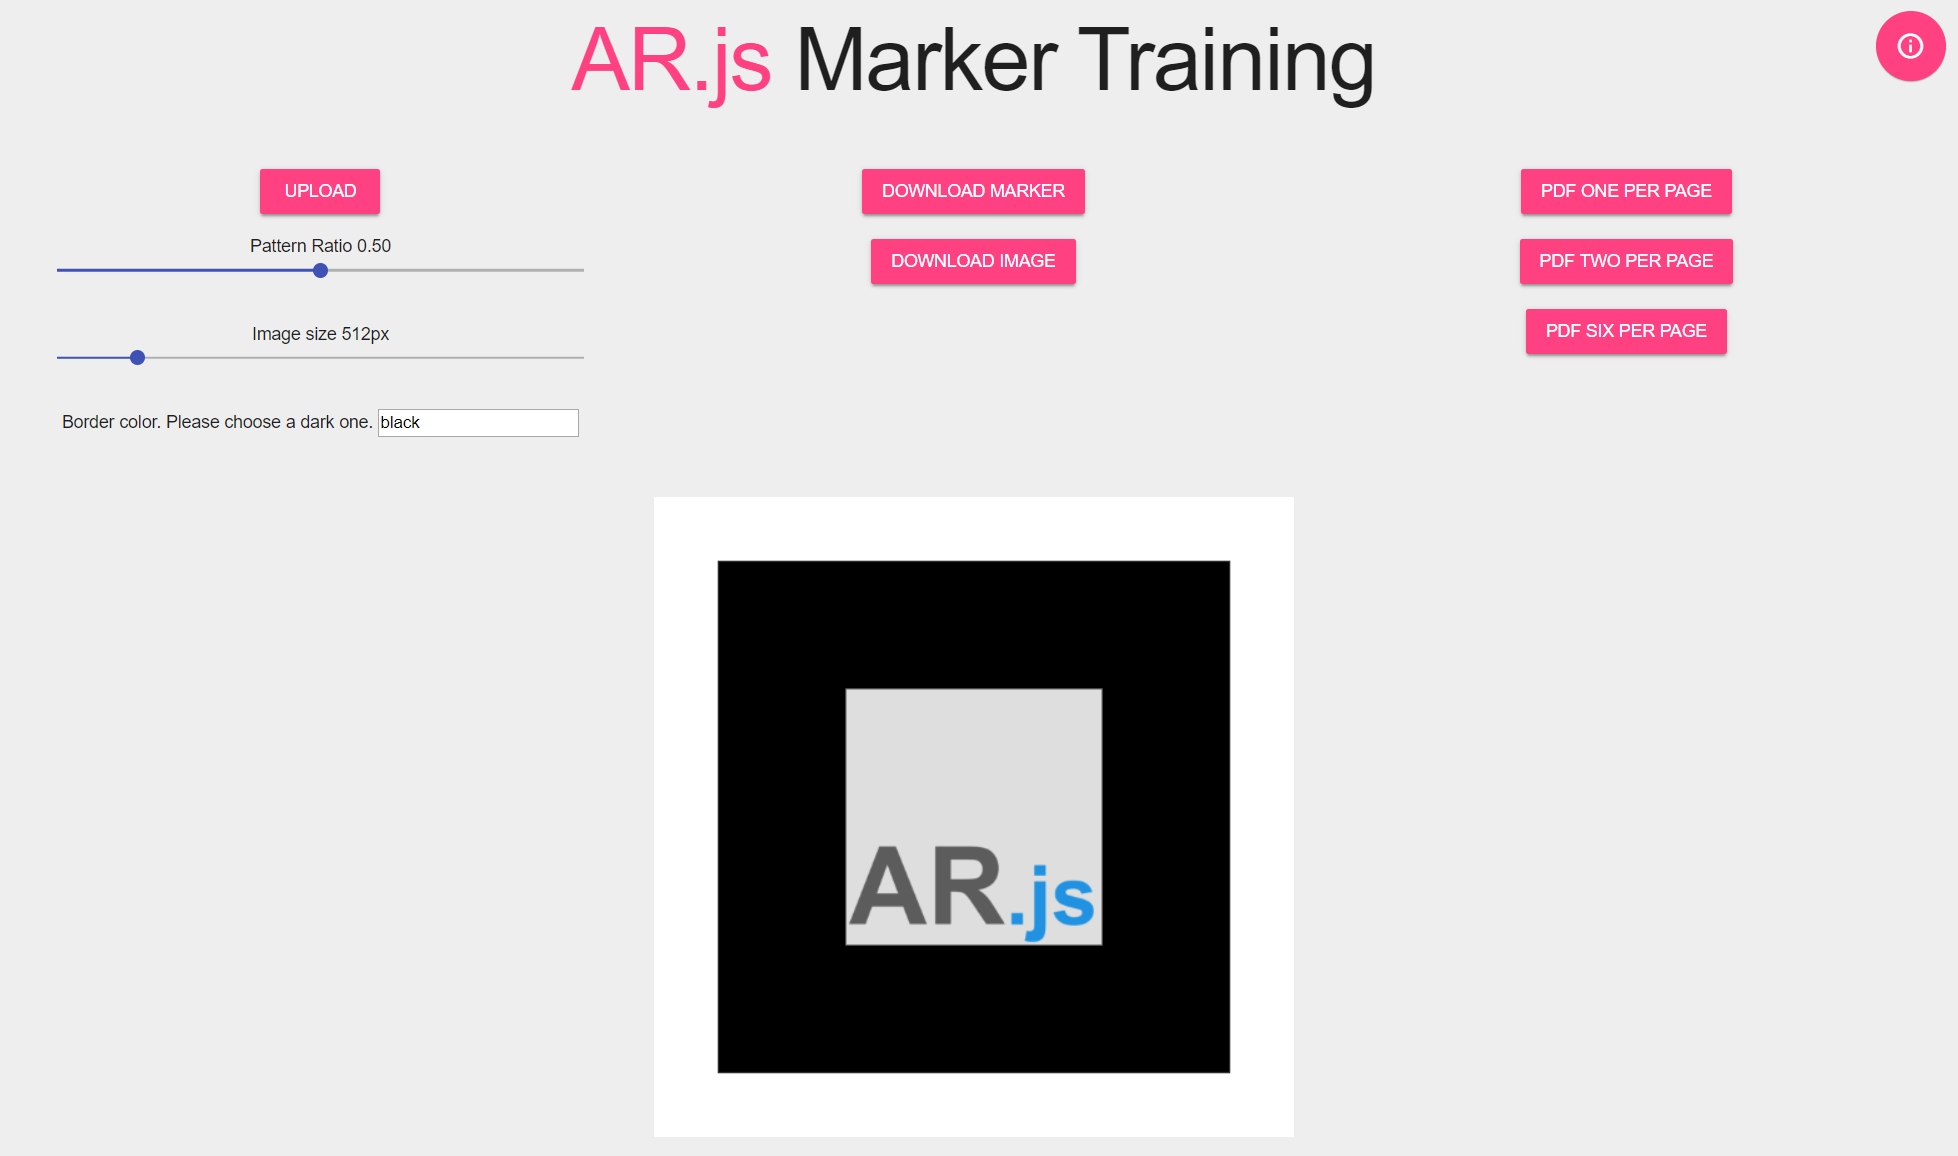 AR.js Maker Training